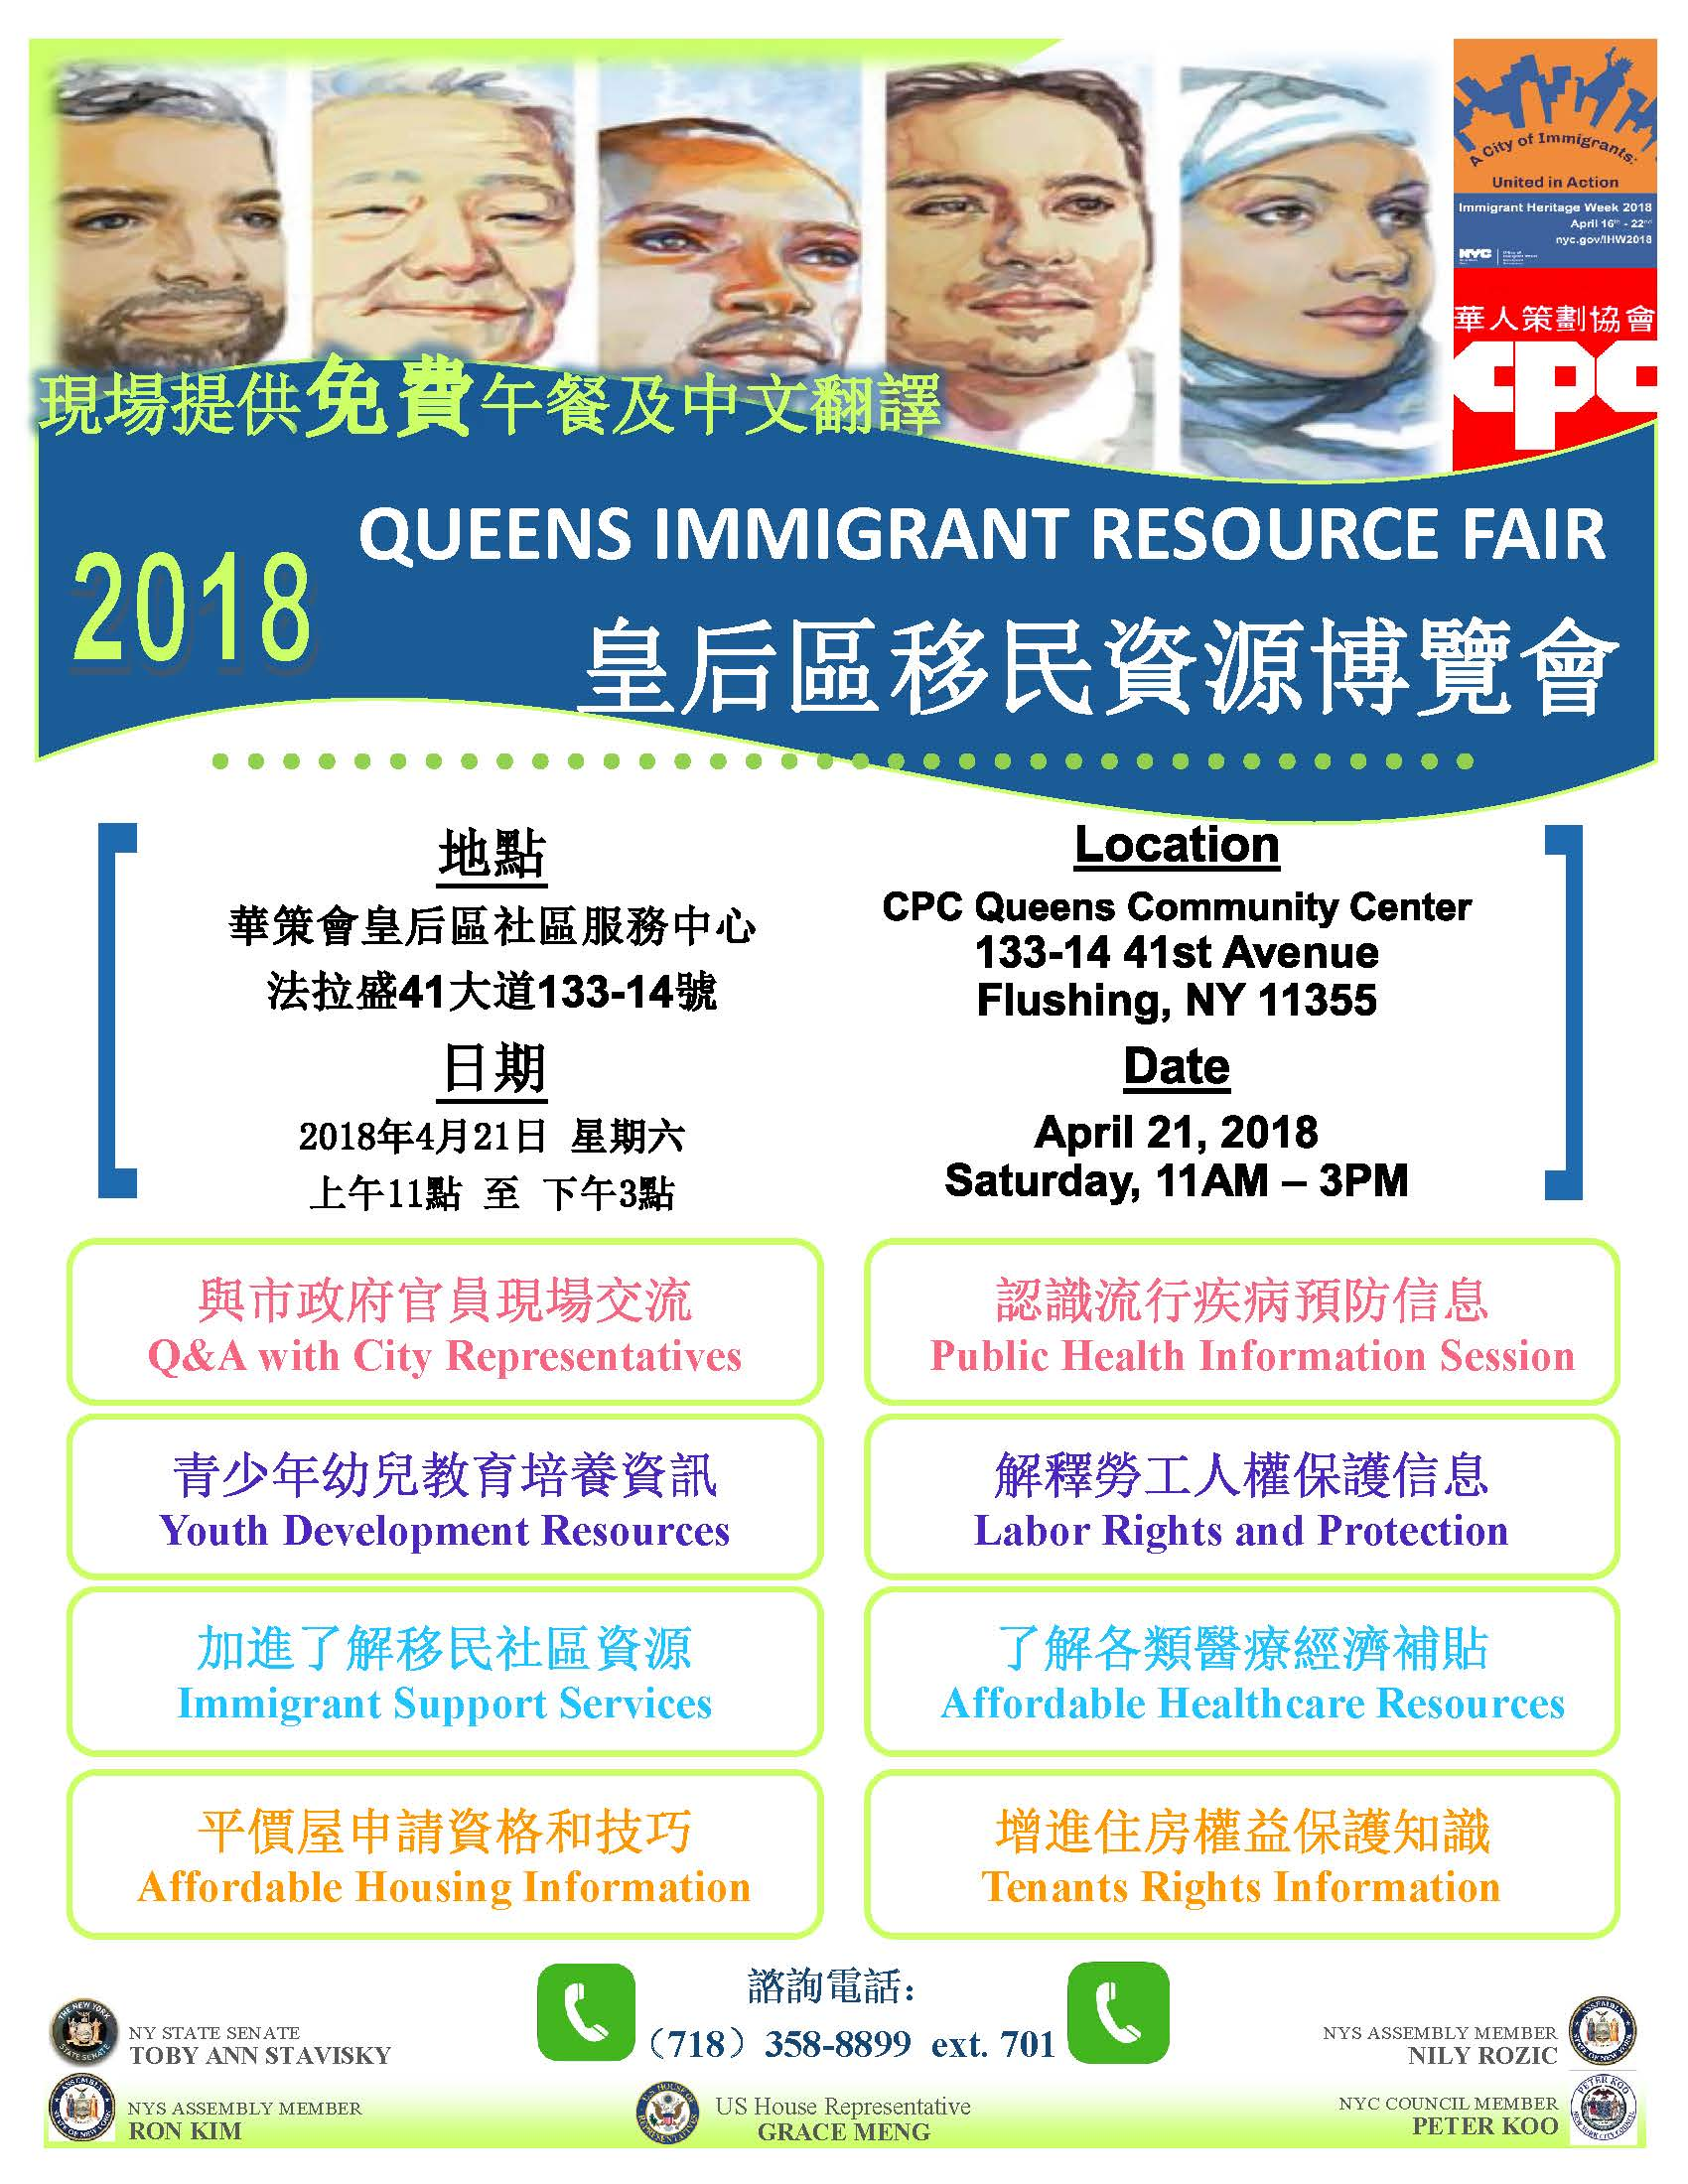 2018 Queens Immigrant Resource Fair